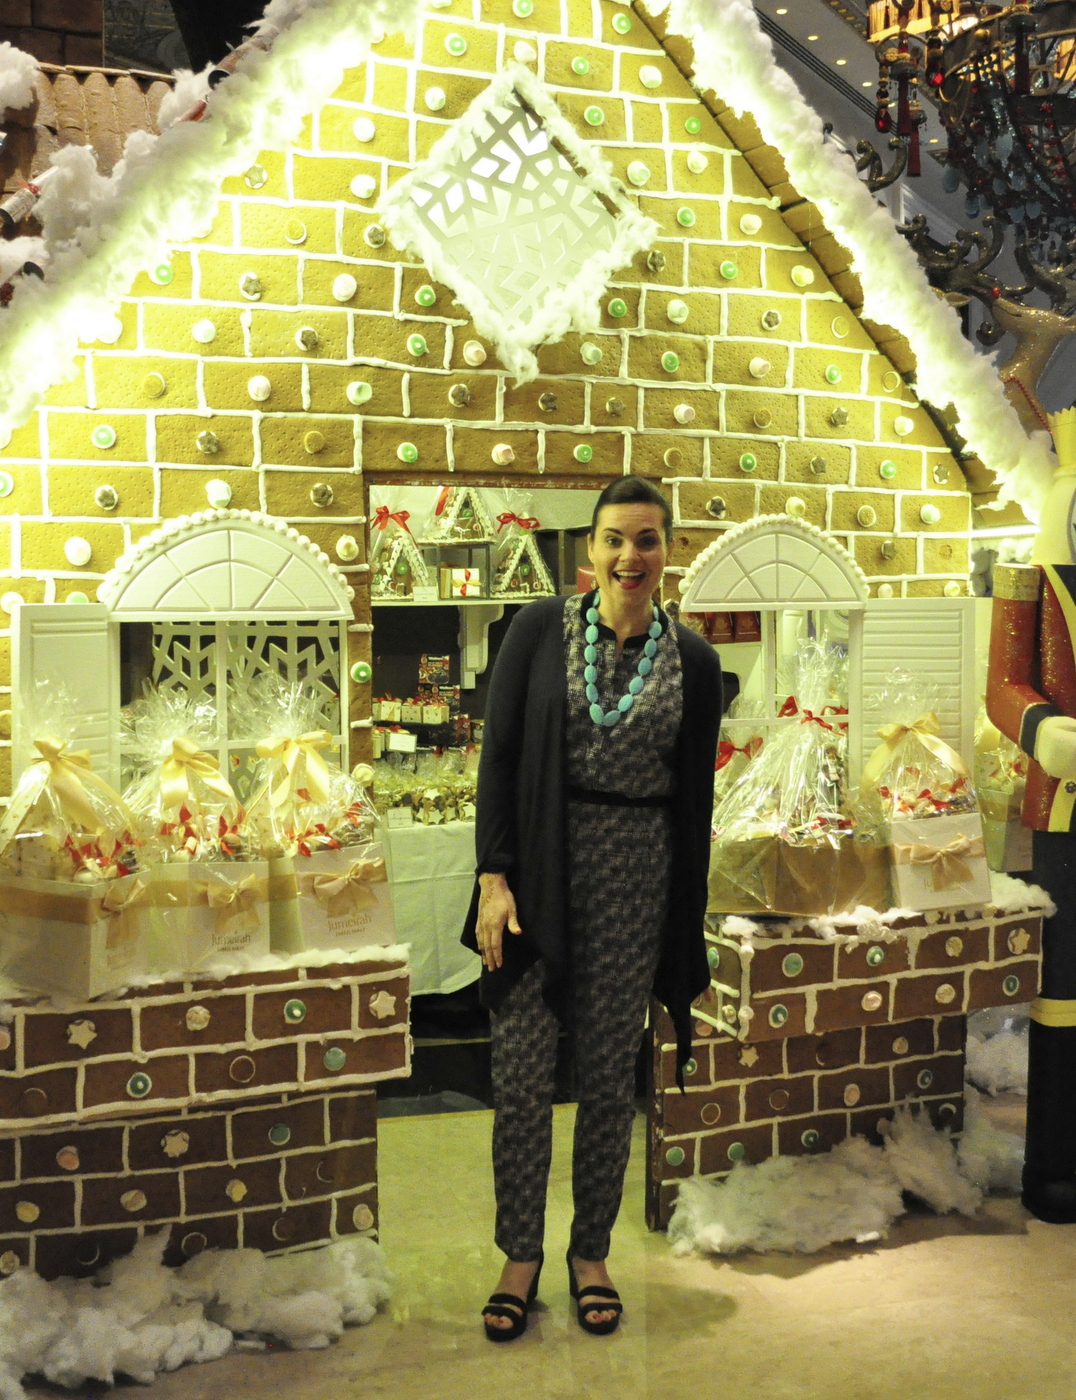 Life Sized Gingerbread House - in The Lotus Lounge at the Jumeirah Zabeel Saray Hotel (on The Palm) - amazing!